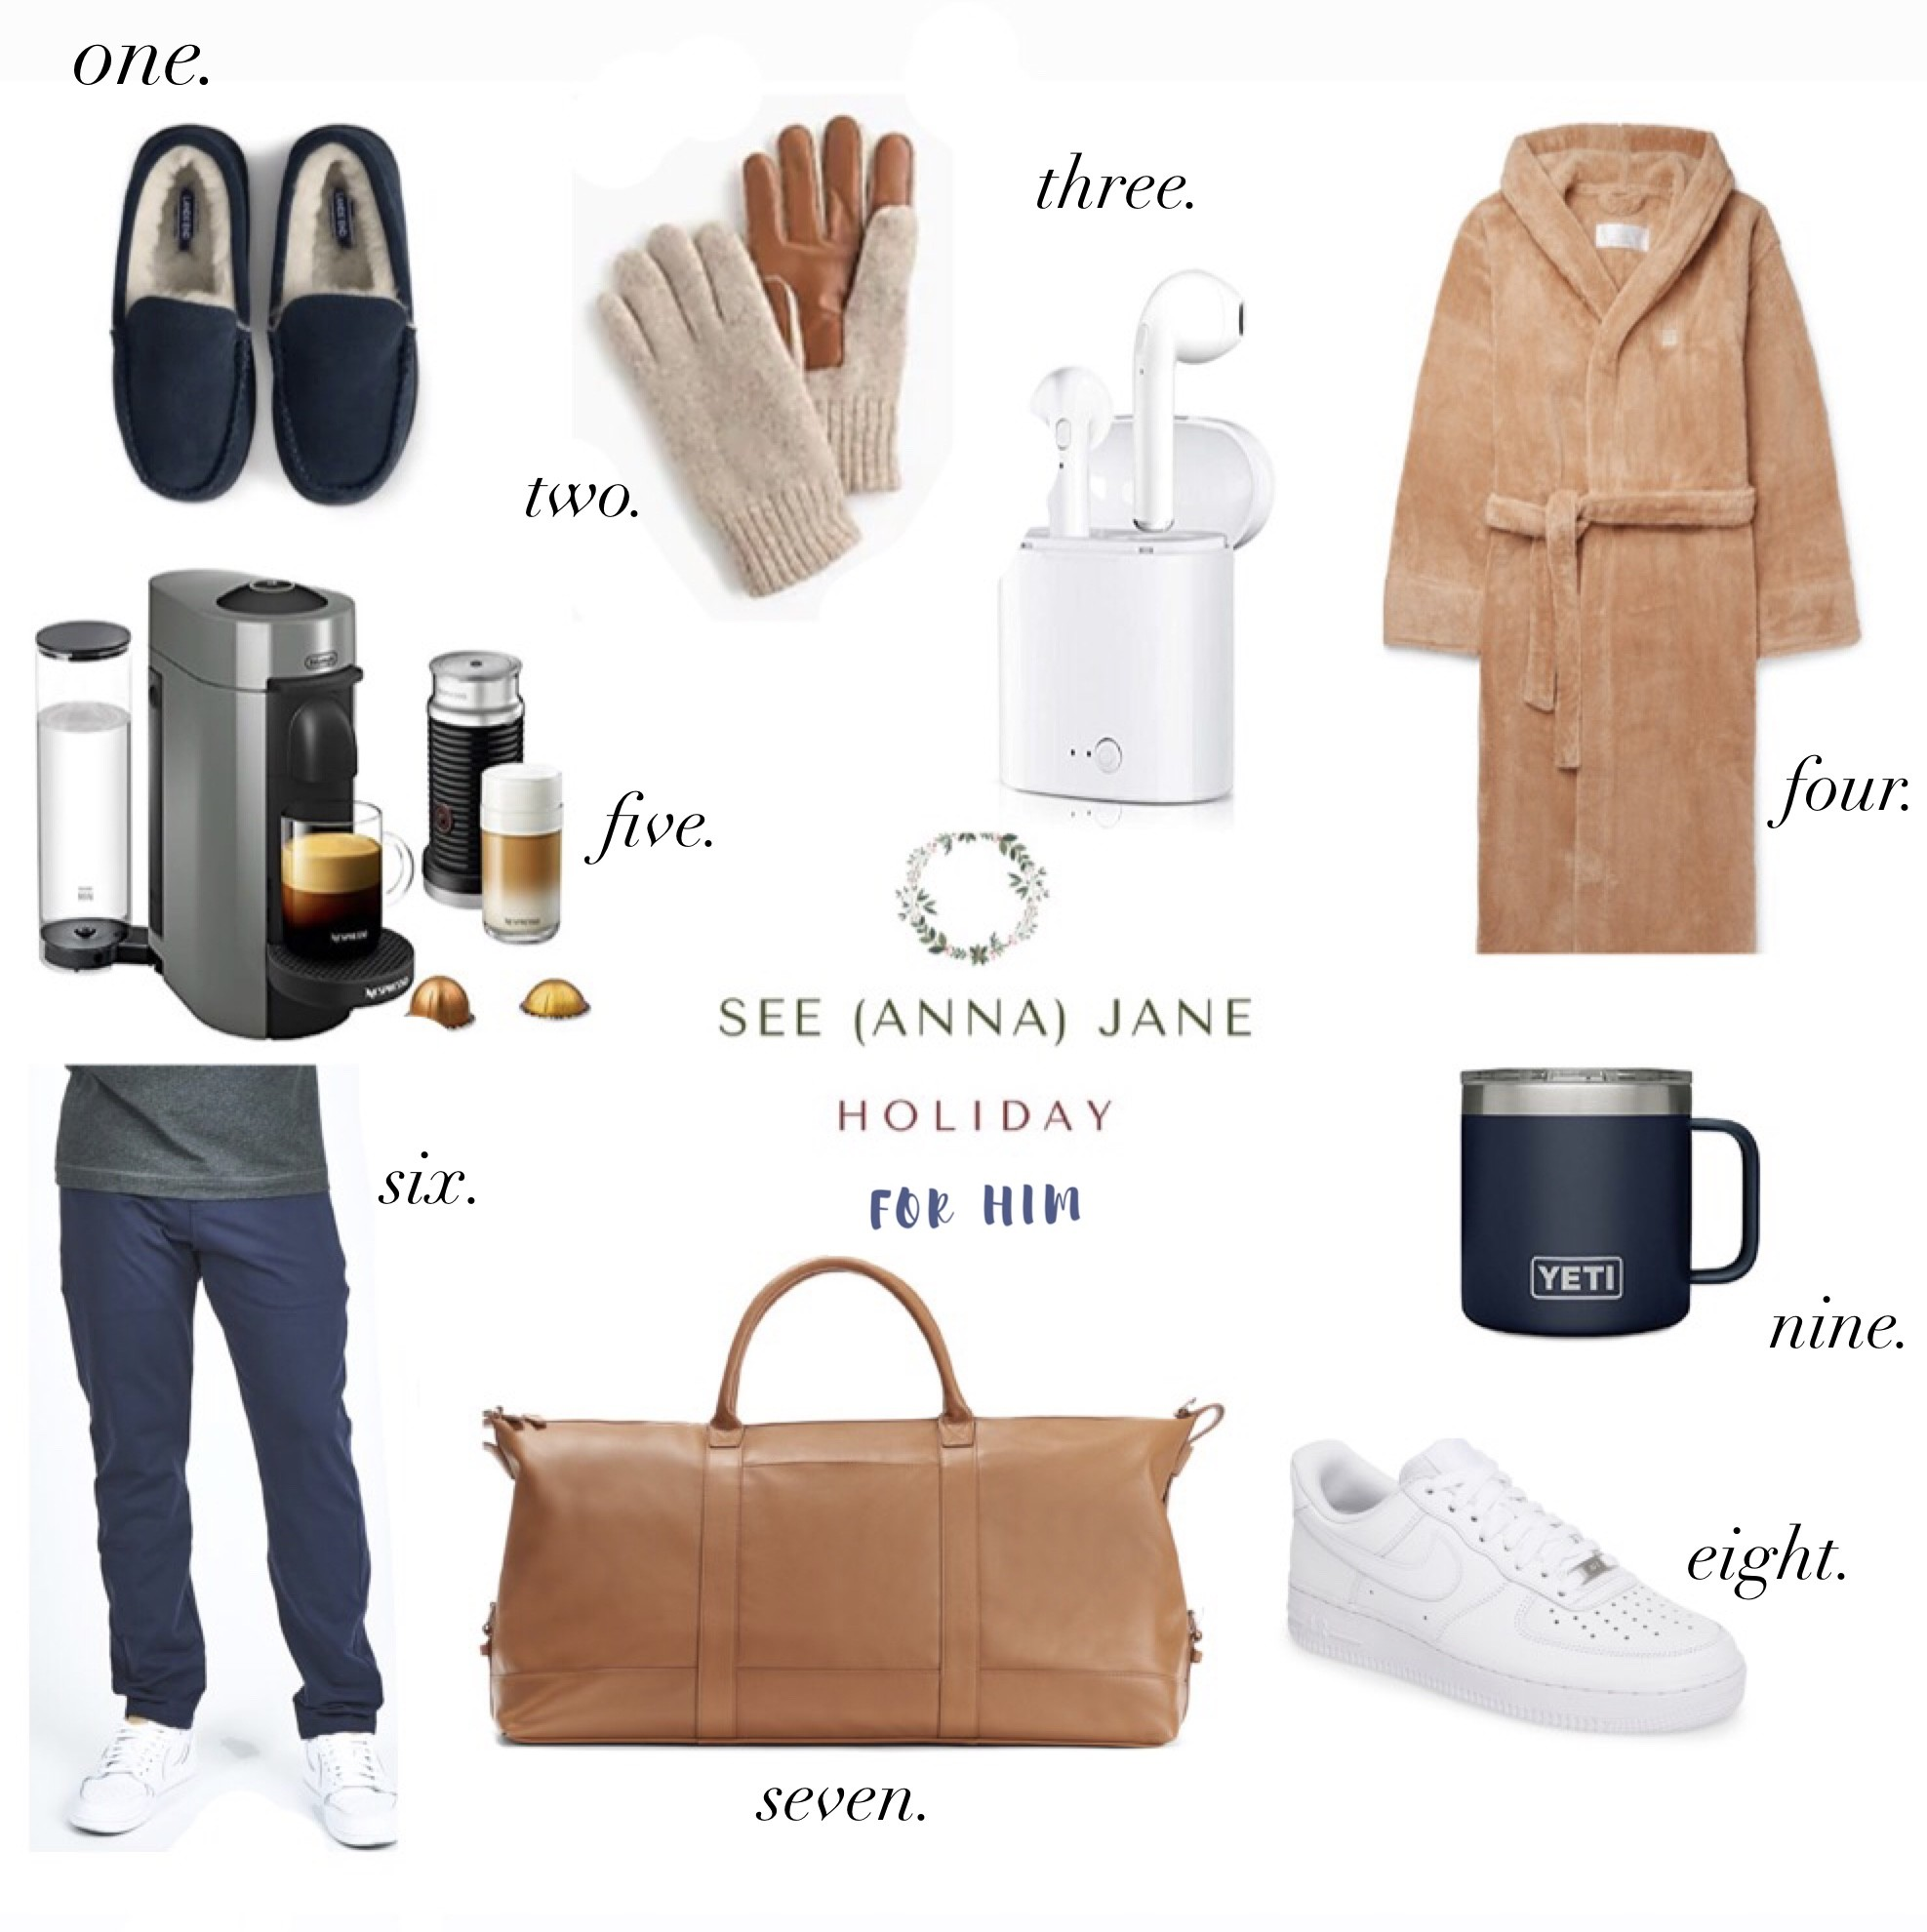 86803f1892d5 You can take my word on men s gifts–I worked for a men s styling company  (Trunk Club was just for men from inception until 2015!) and I really came  to ...